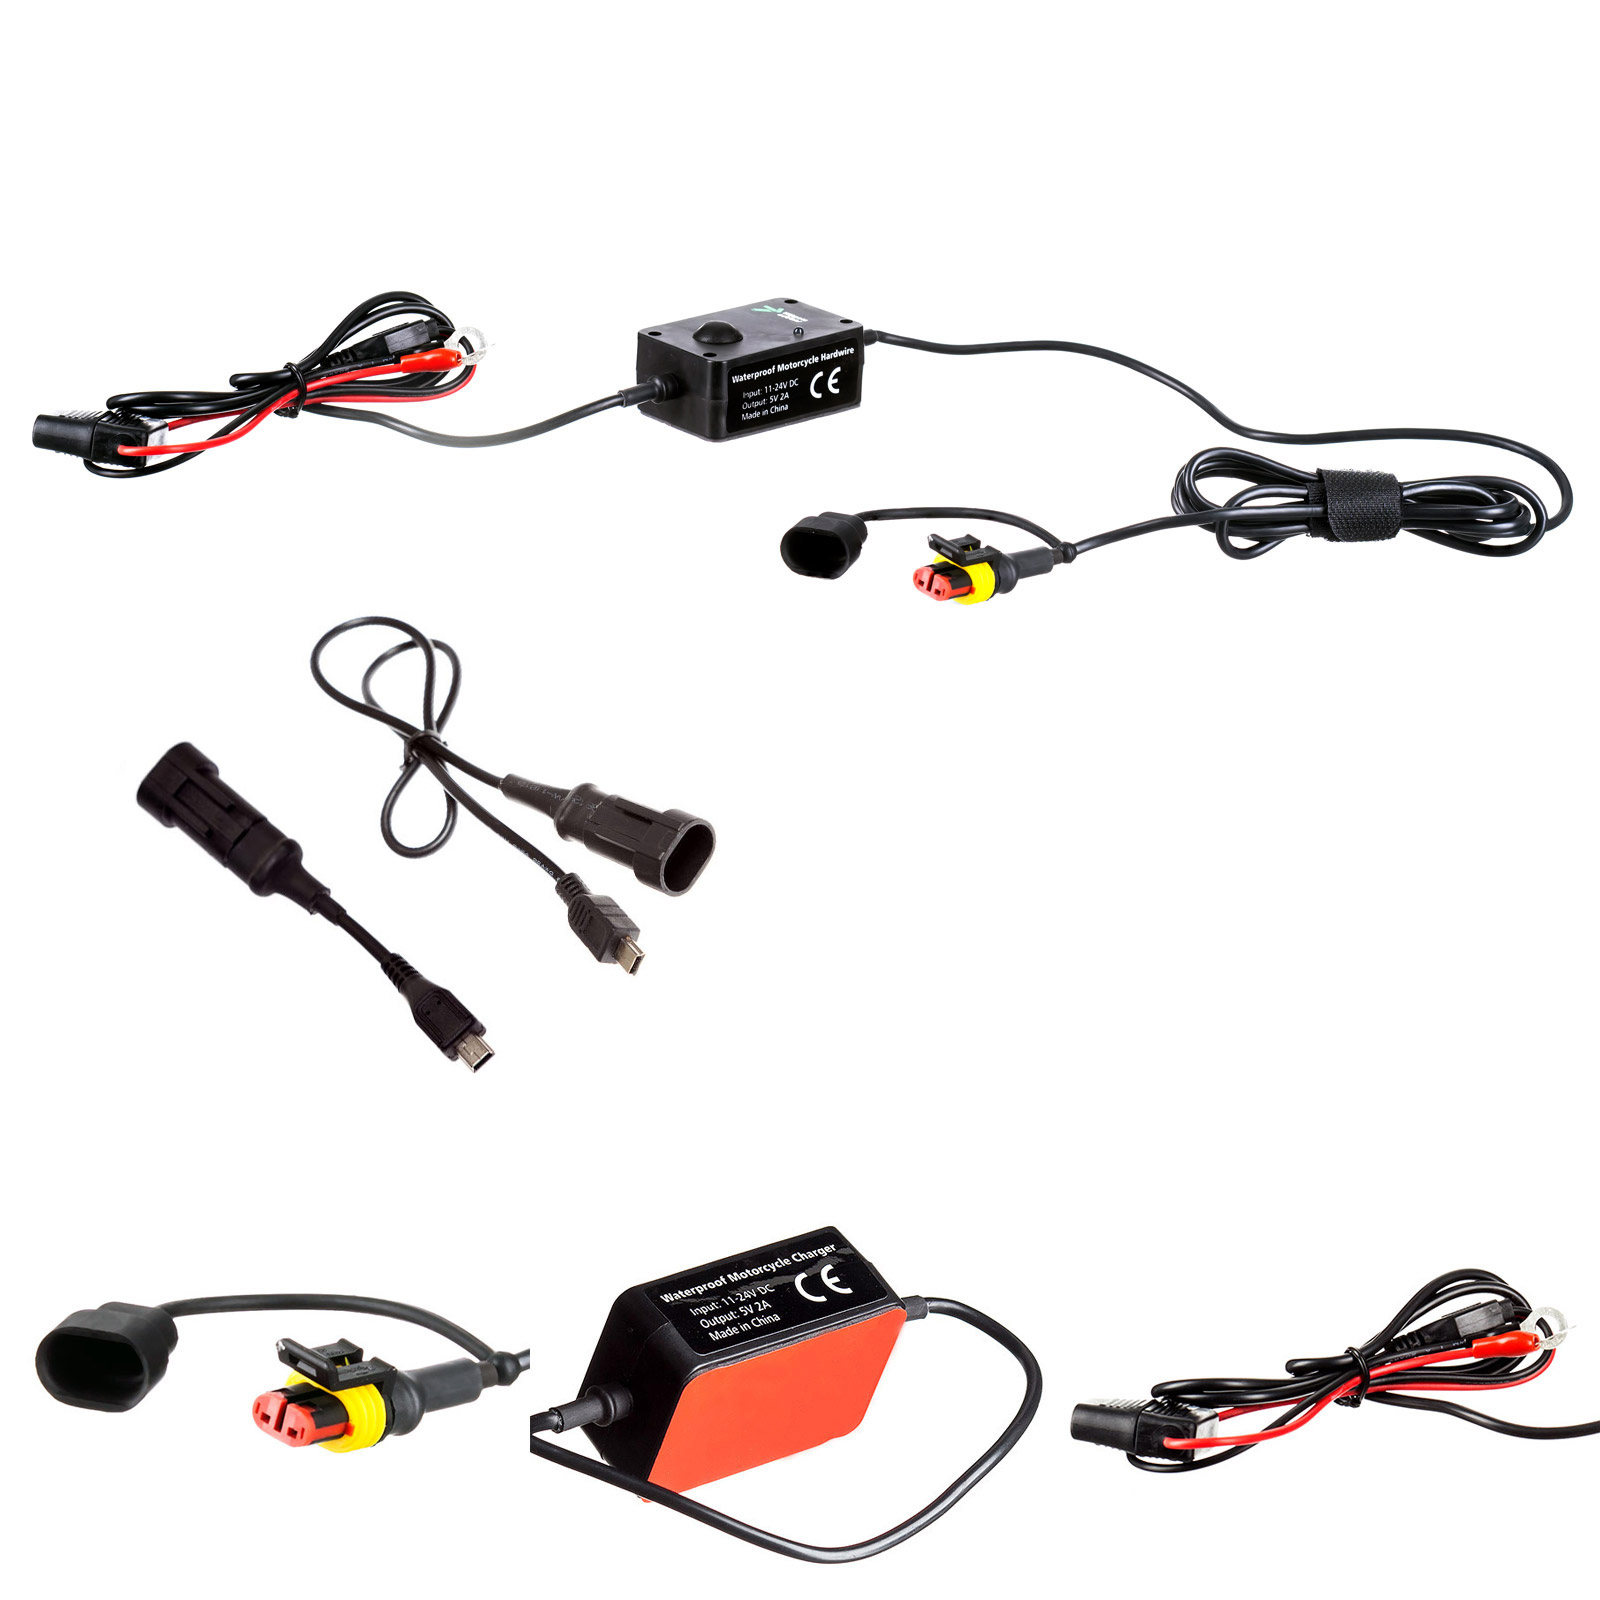 Ultimateaddons Motorcycle Hard Wire Direct Battery Mobile Phone Sat ...